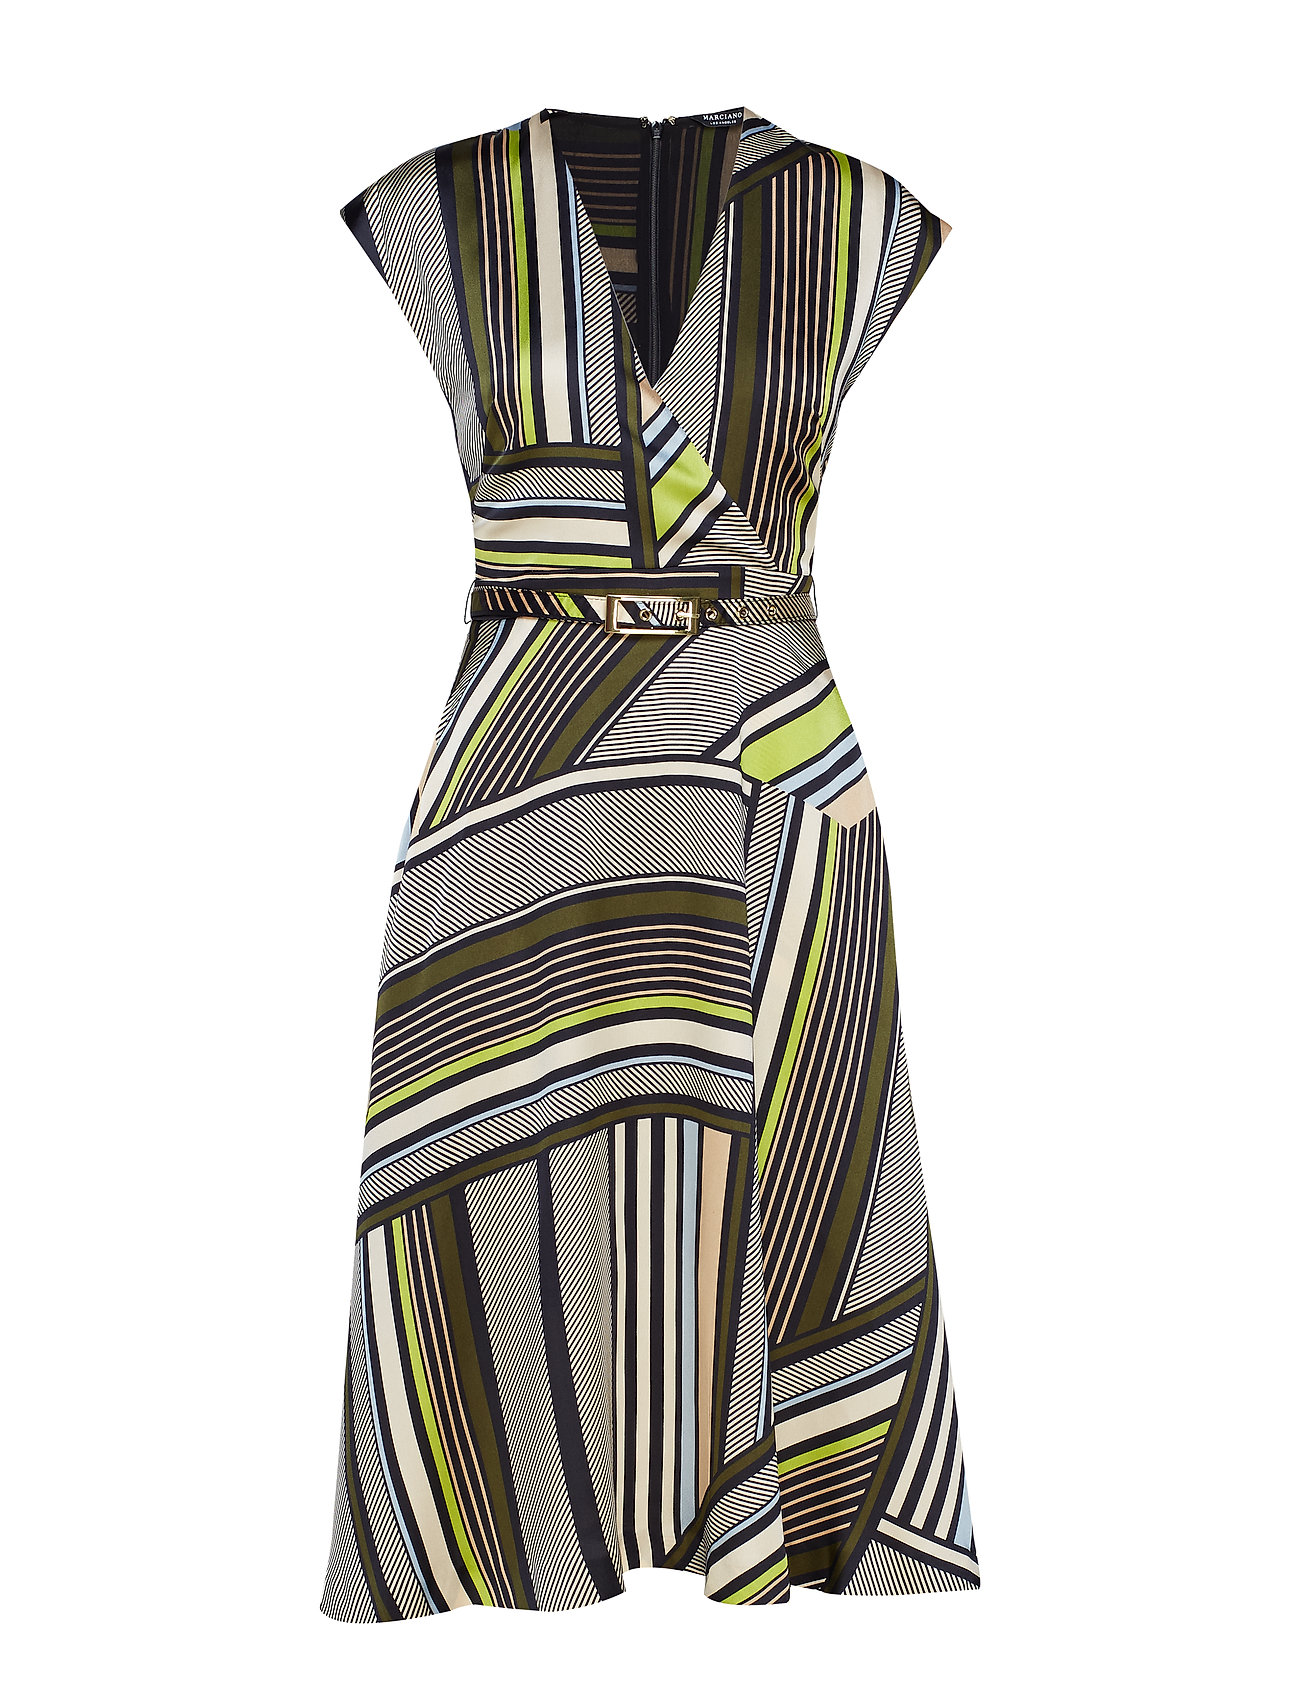 Marciano by GUESS LINDA DRESS - SEEING STRIPES